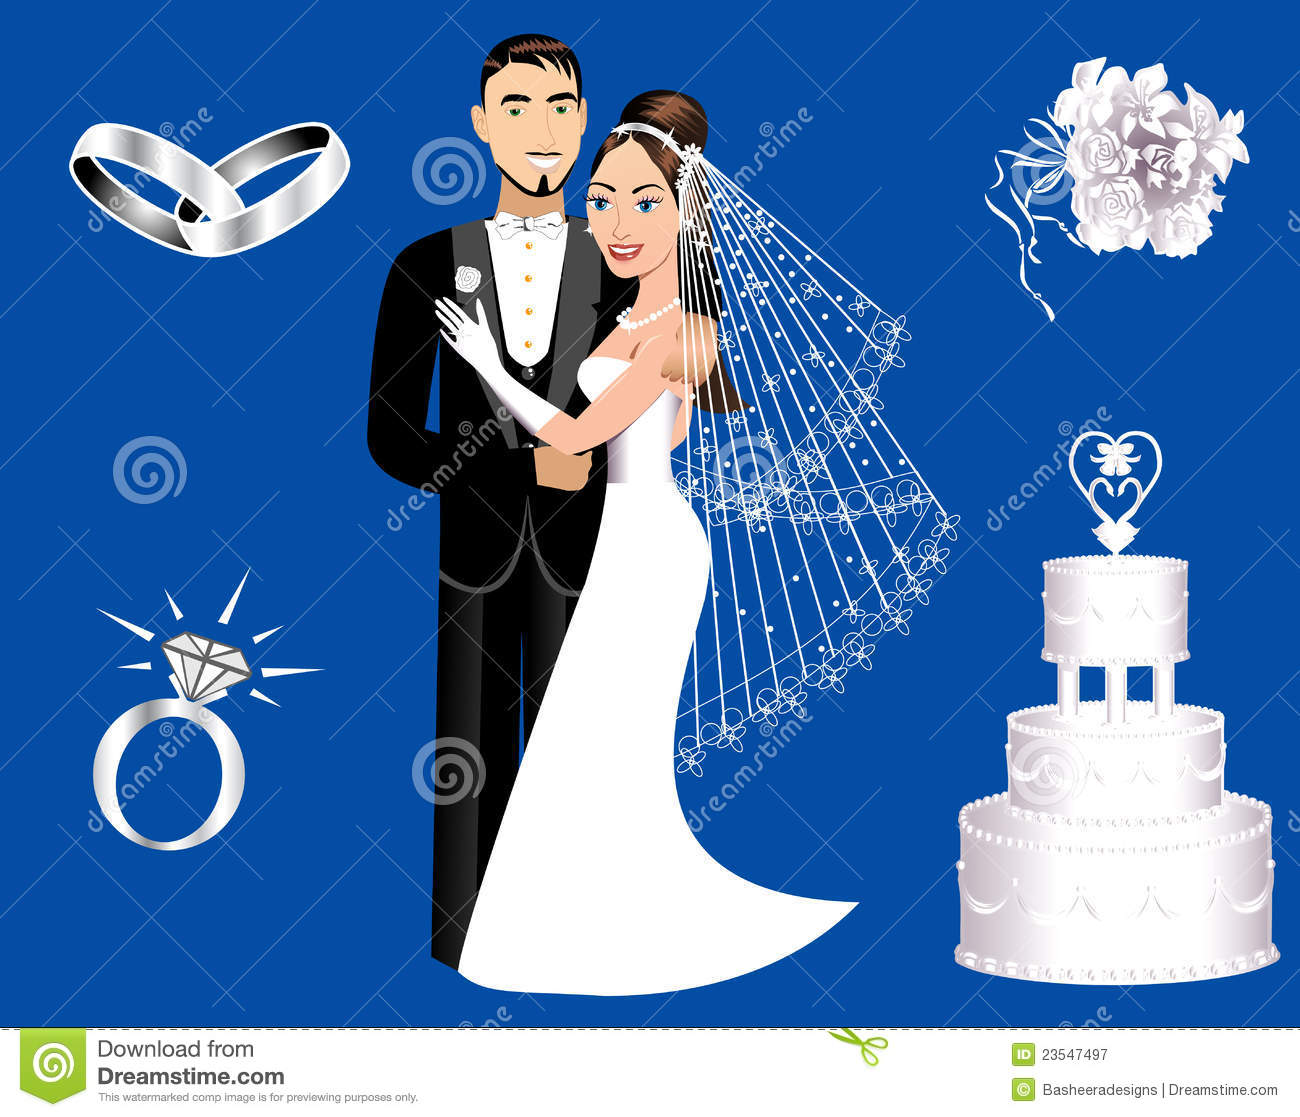 Wedding Icons Royalty Free Stock Photography - Image: 23547497: www.dreamstime.com/royalty-free-stock-photography-wedding-icons...